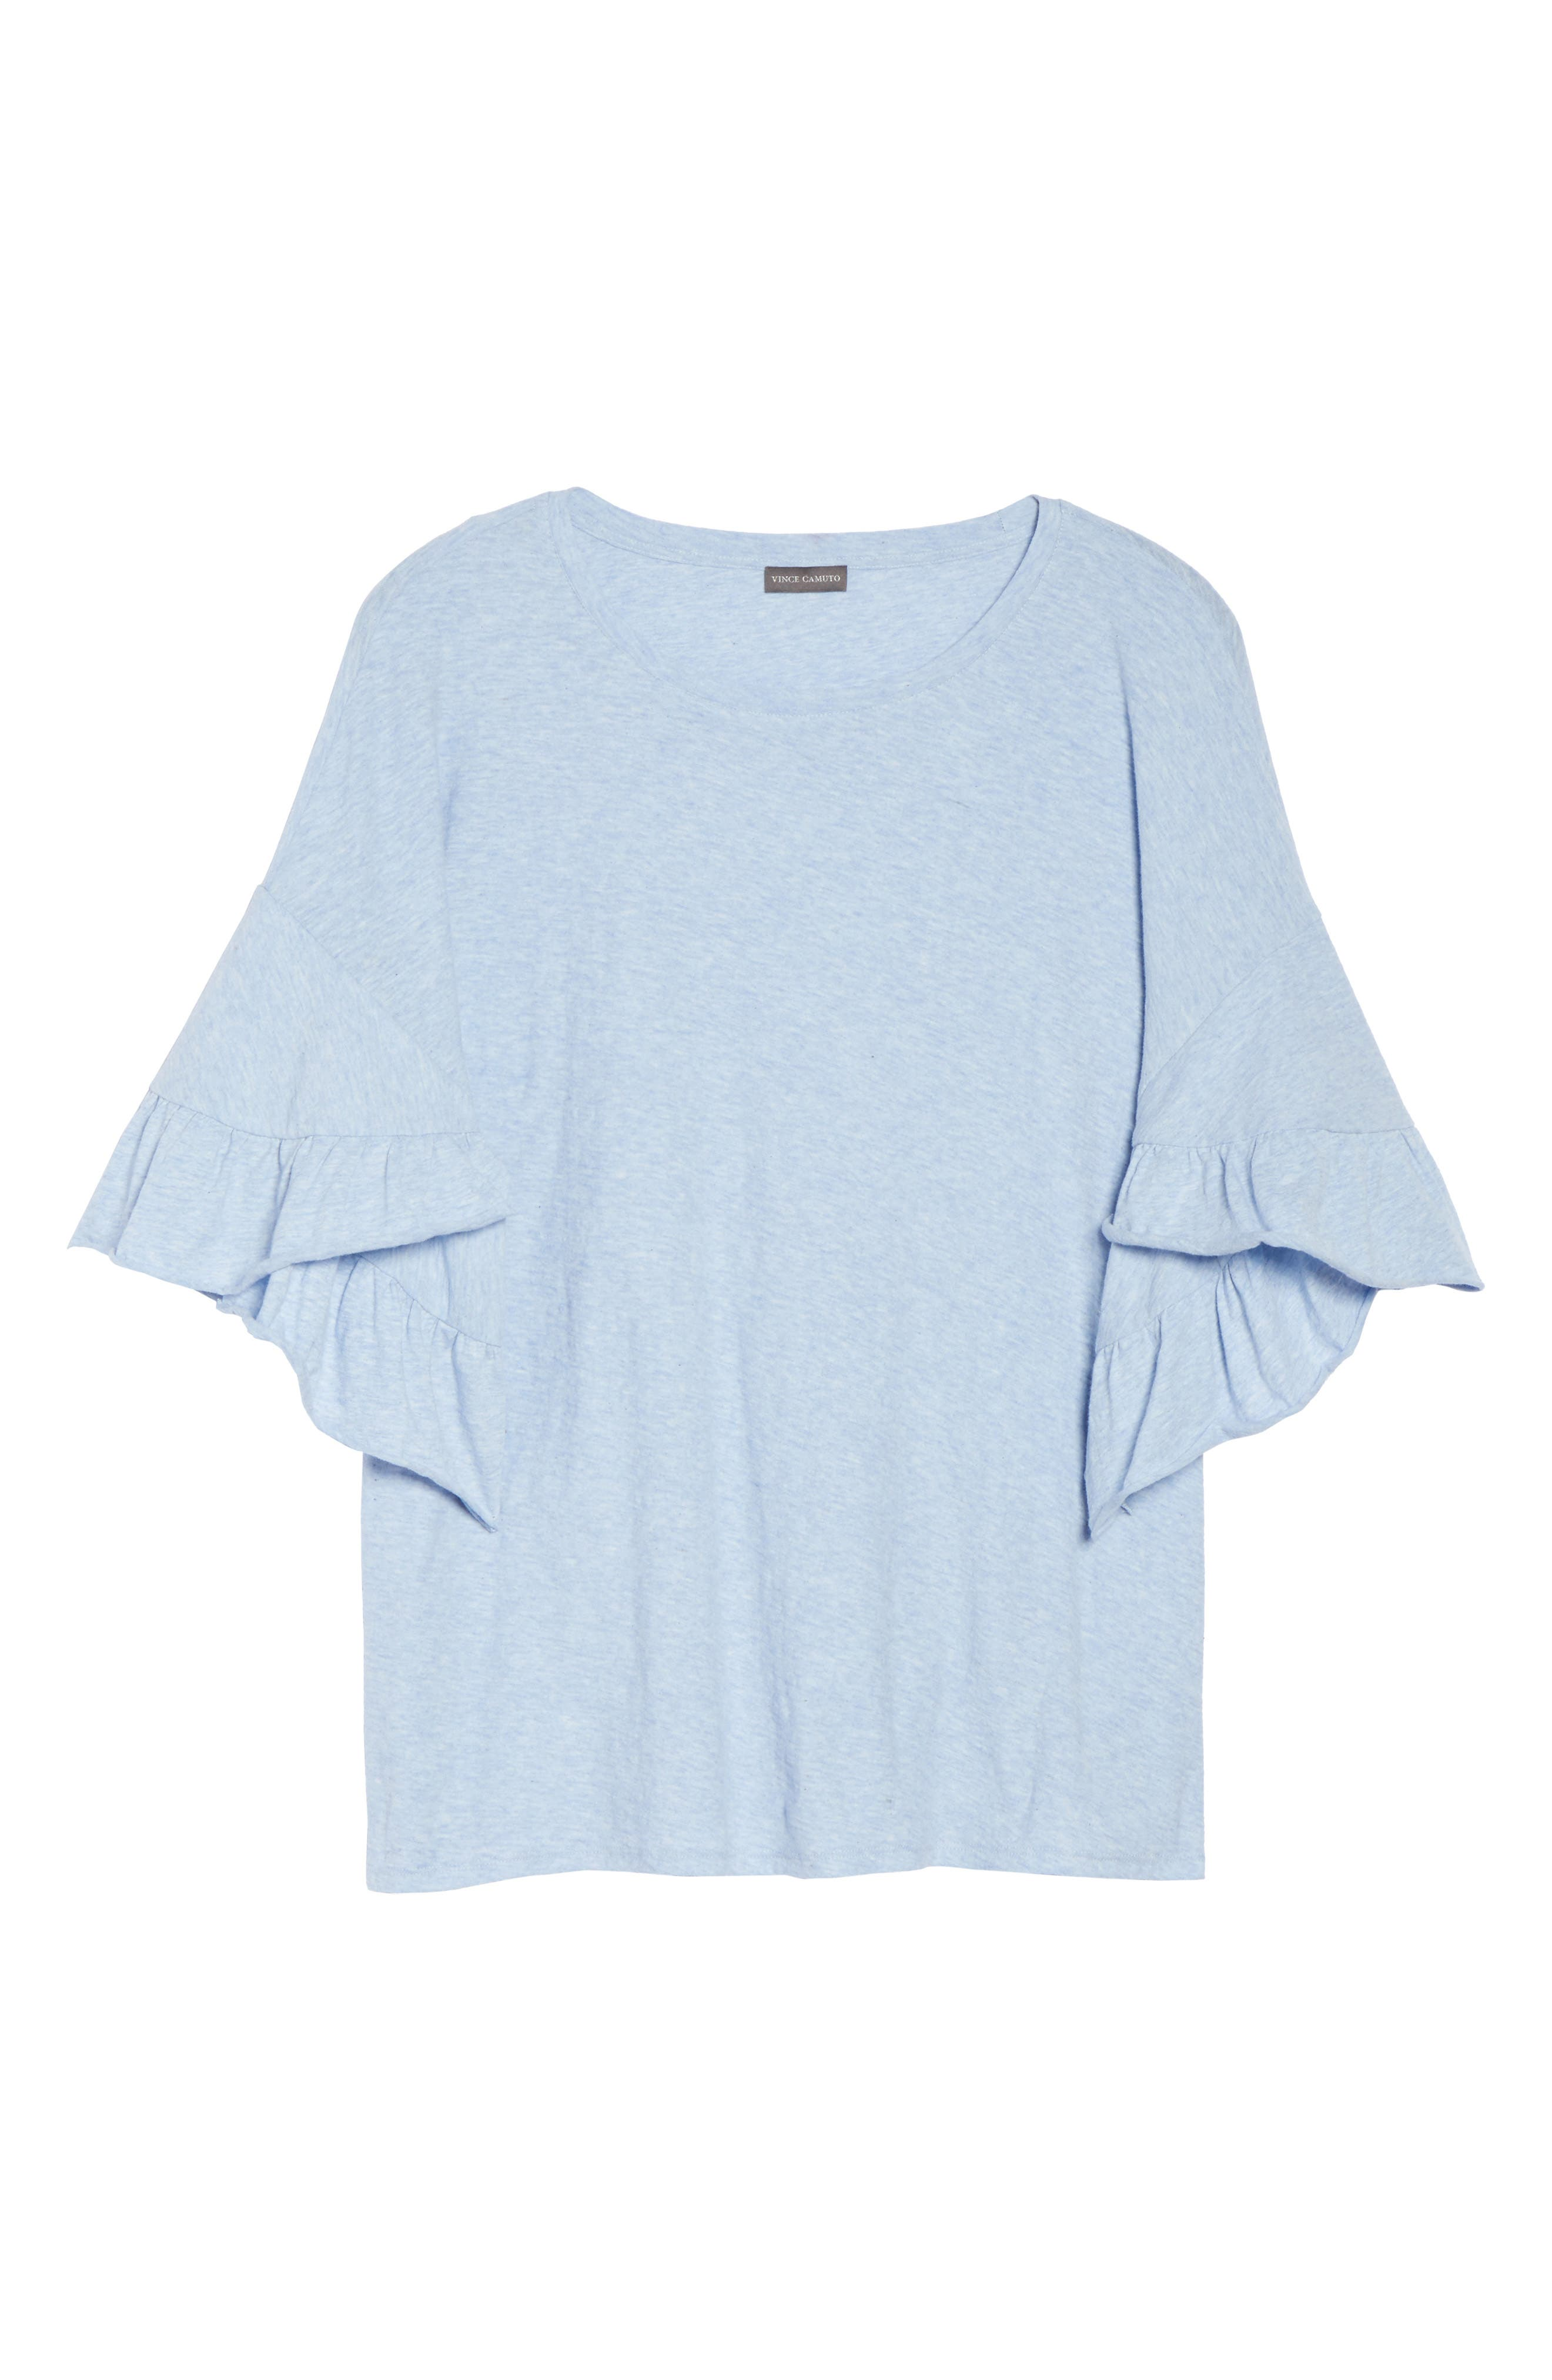 Drop Shoulder Tiered Ruffle Sleeve Top,                             Alternate thumbnail 7, color,                             Lt Chambray Heather